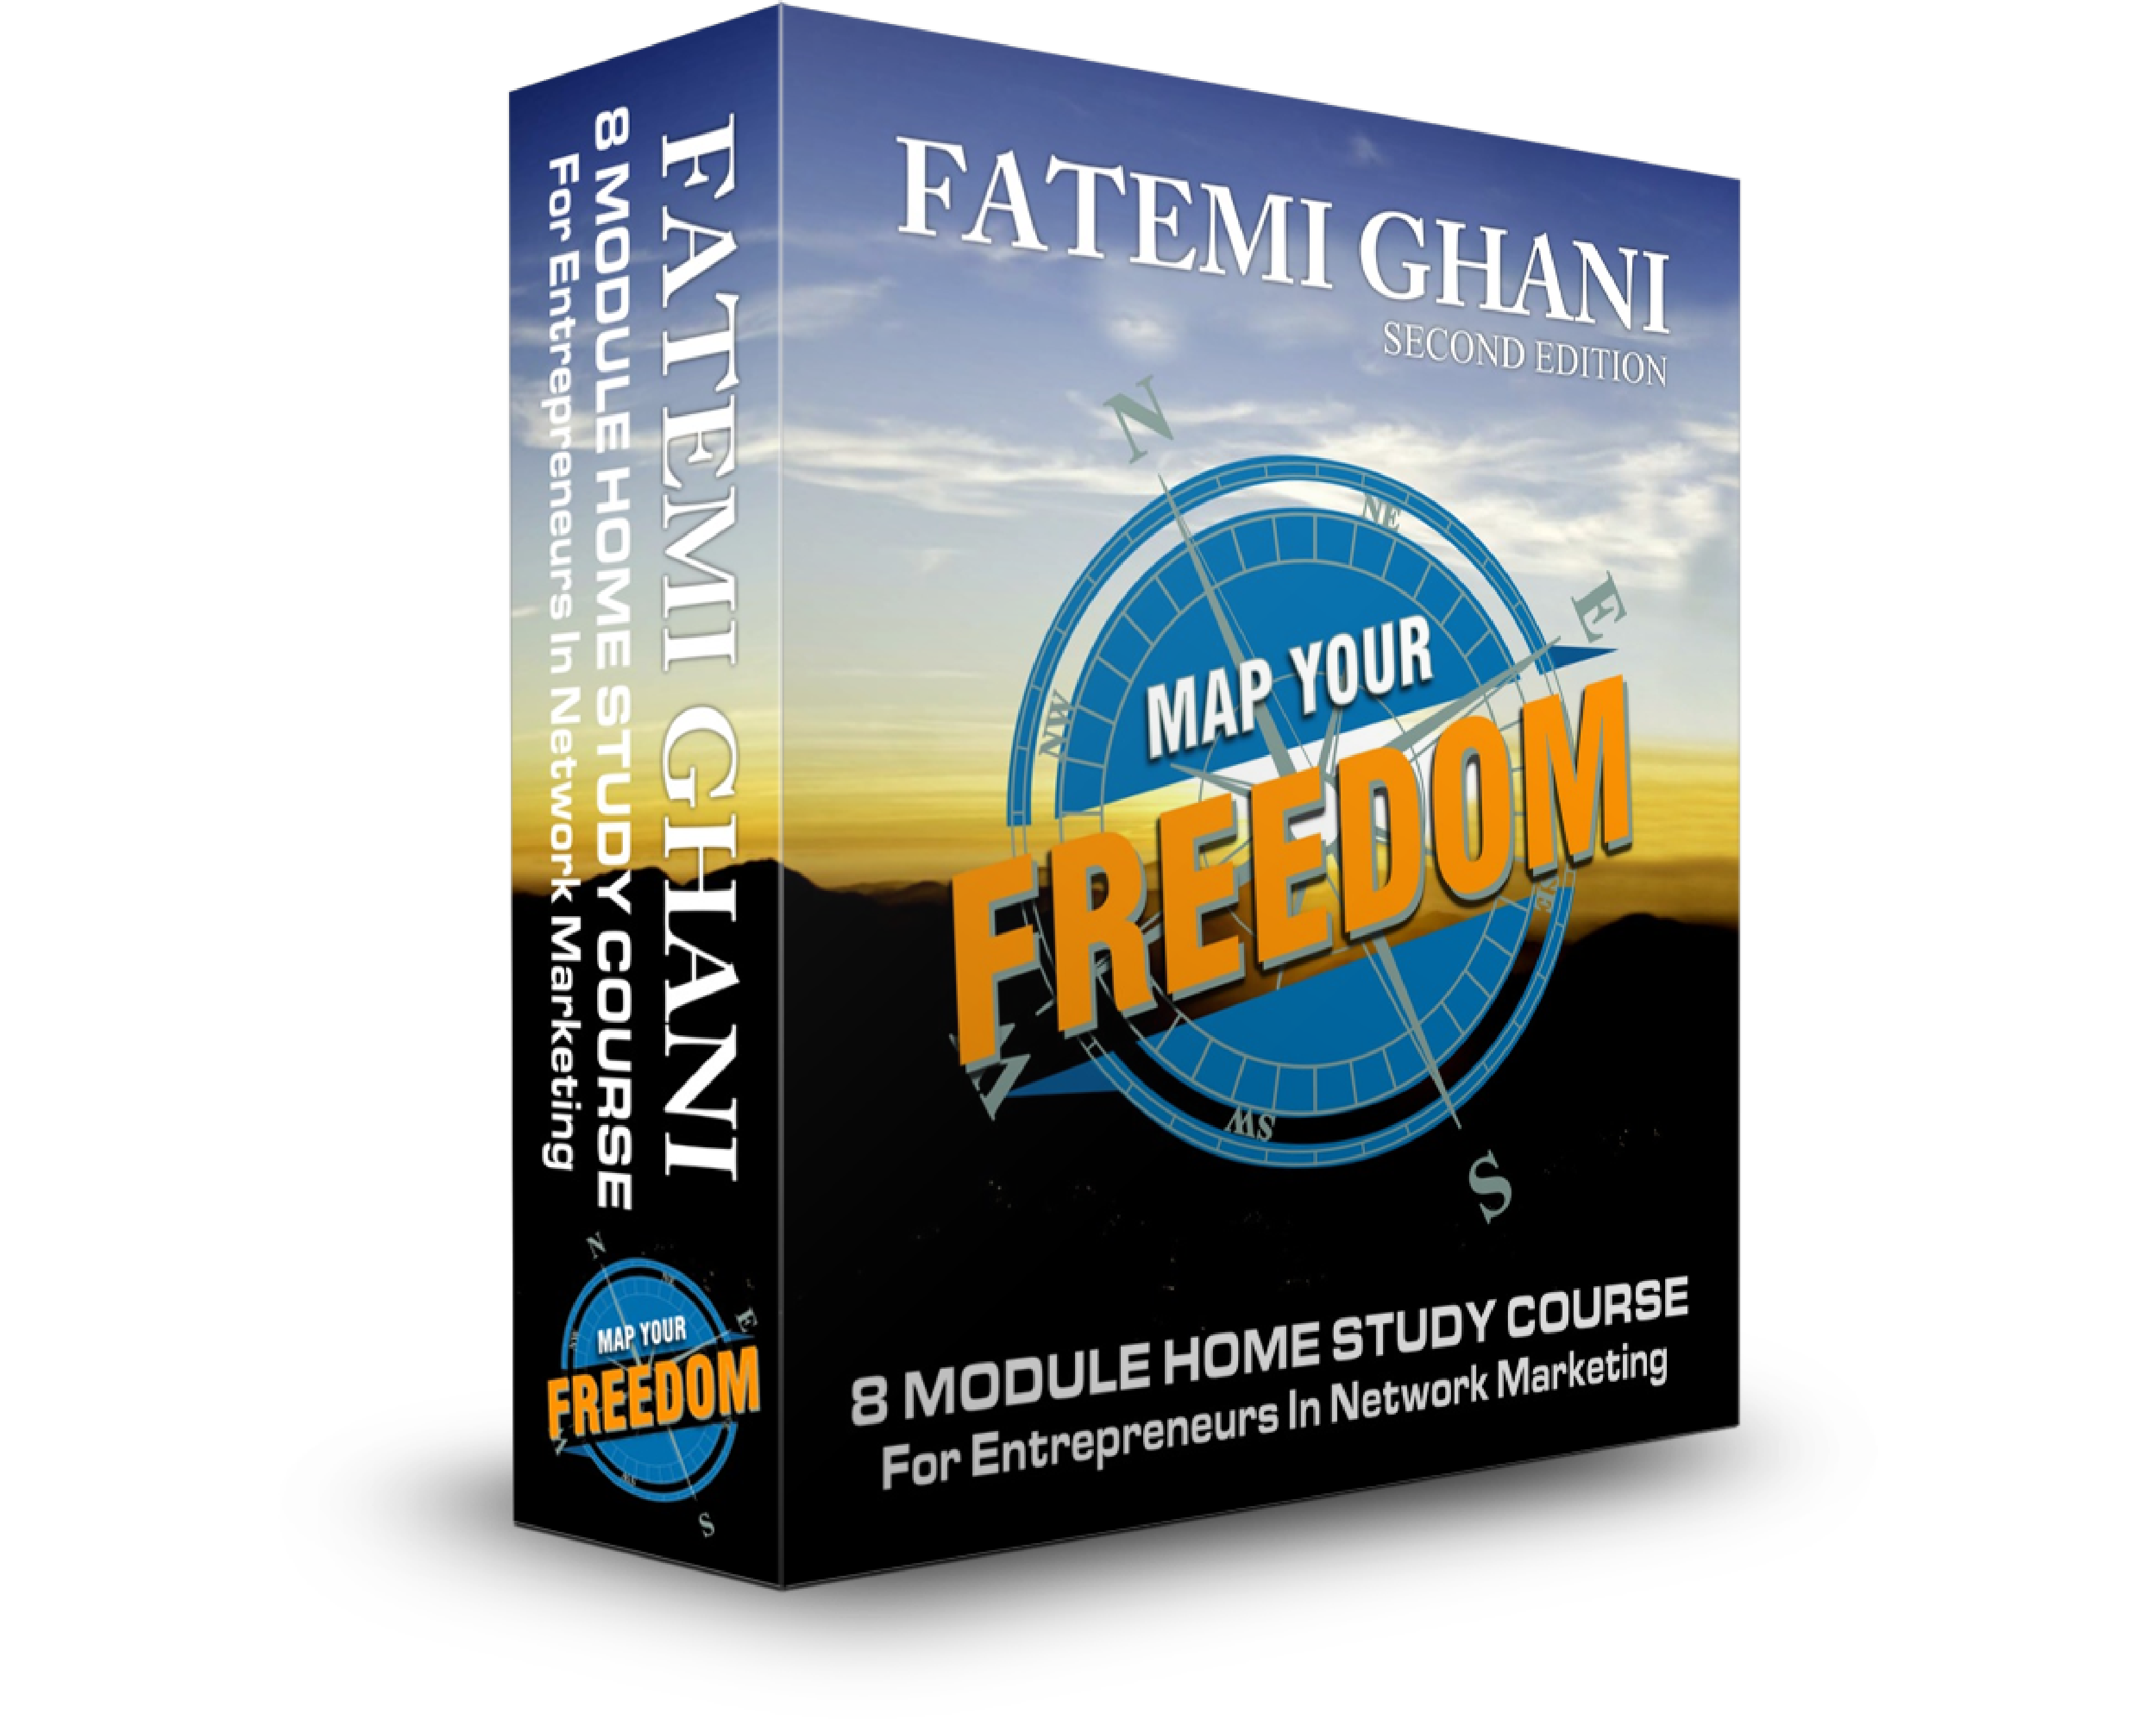 Map Your Freedom Home Study Course